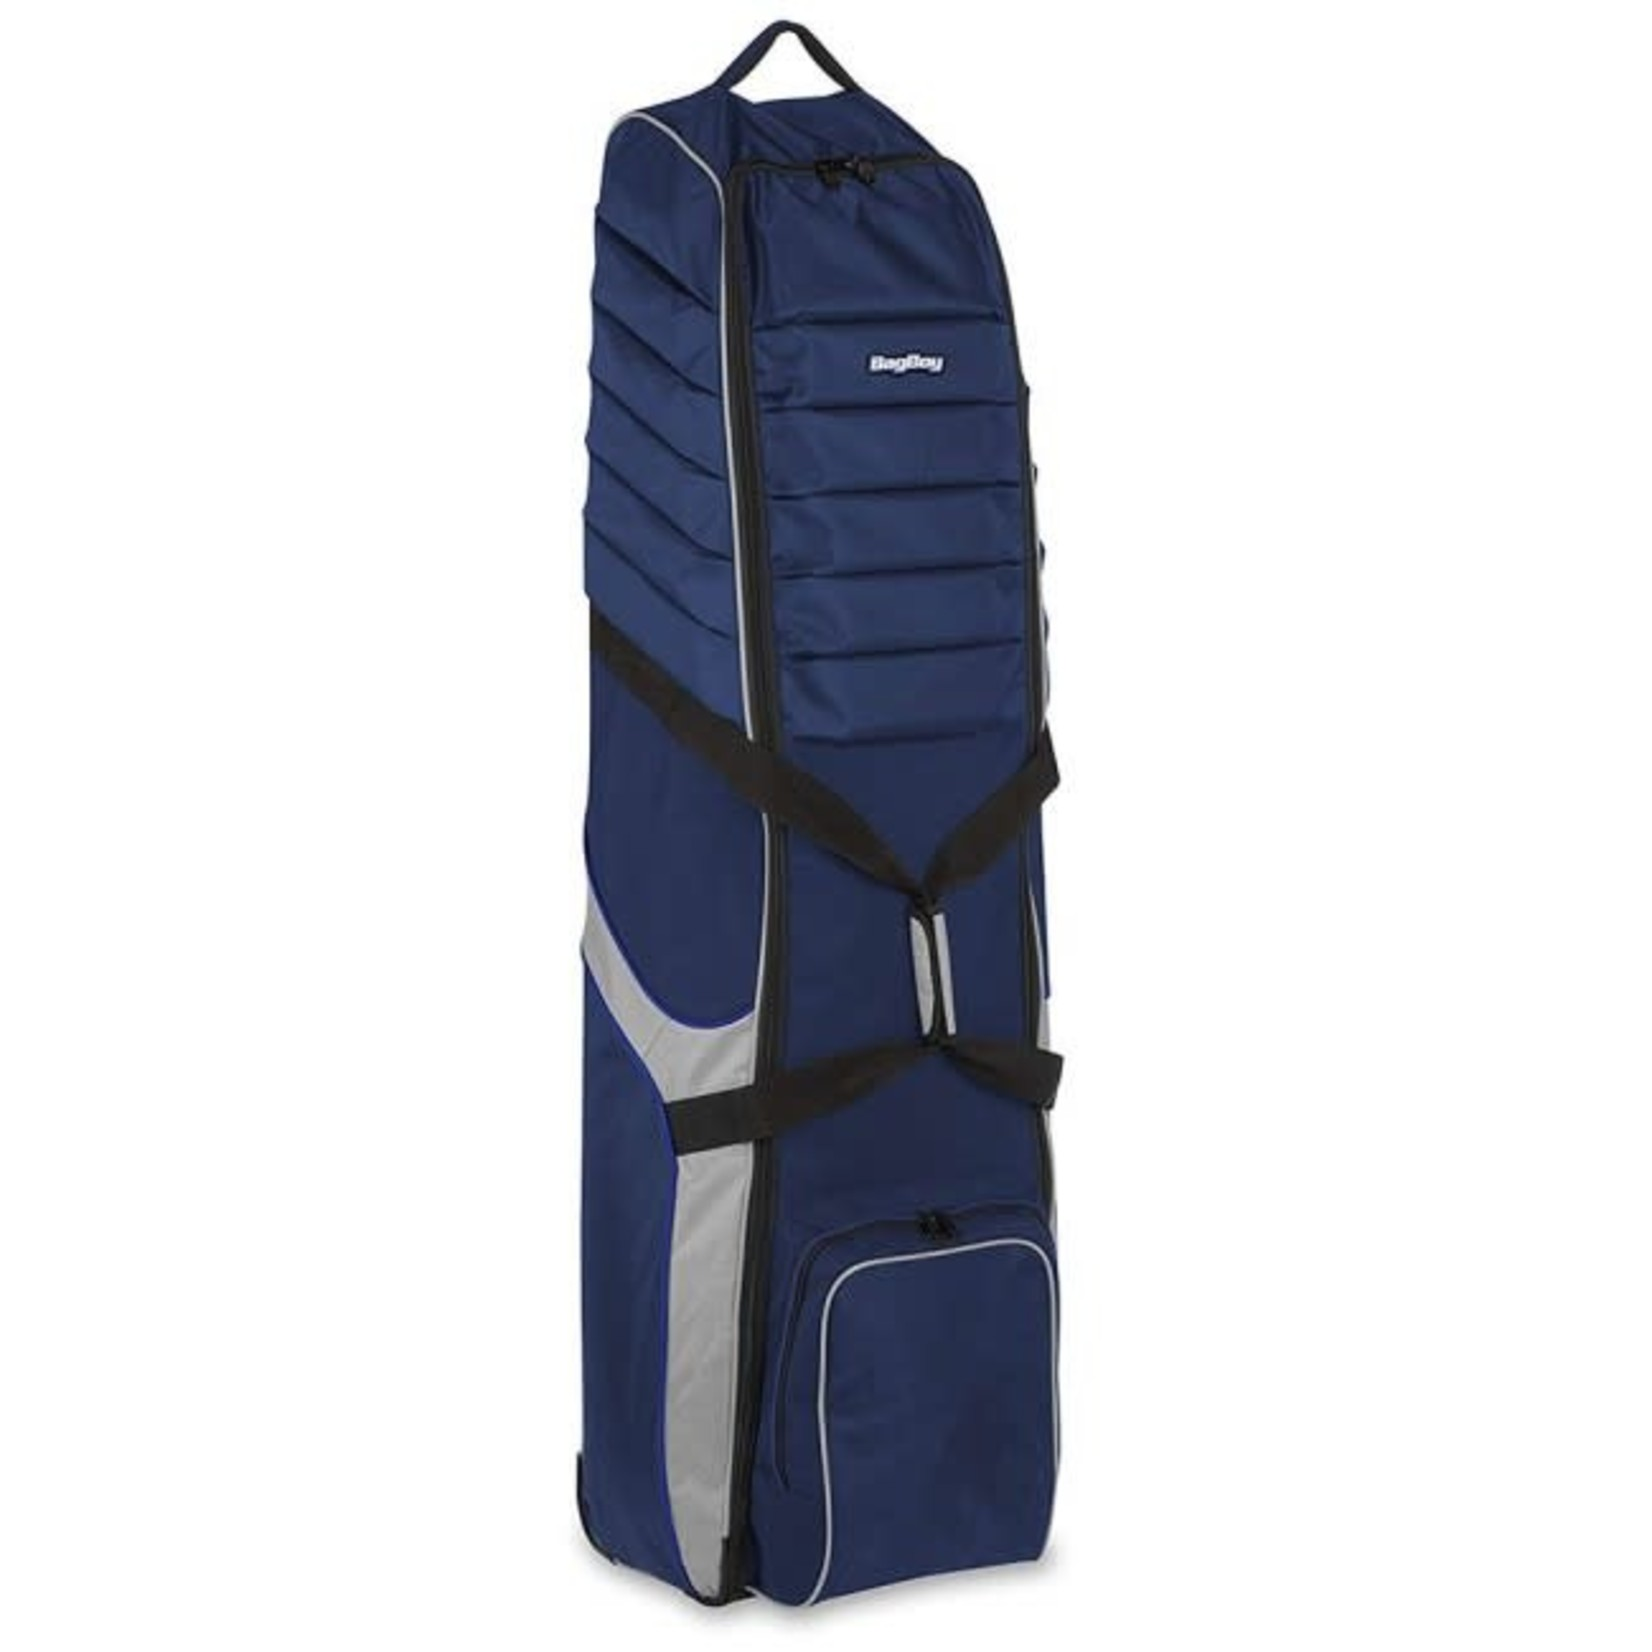 BagBoy Bagboy T-750 Travelcover Navy/Grey